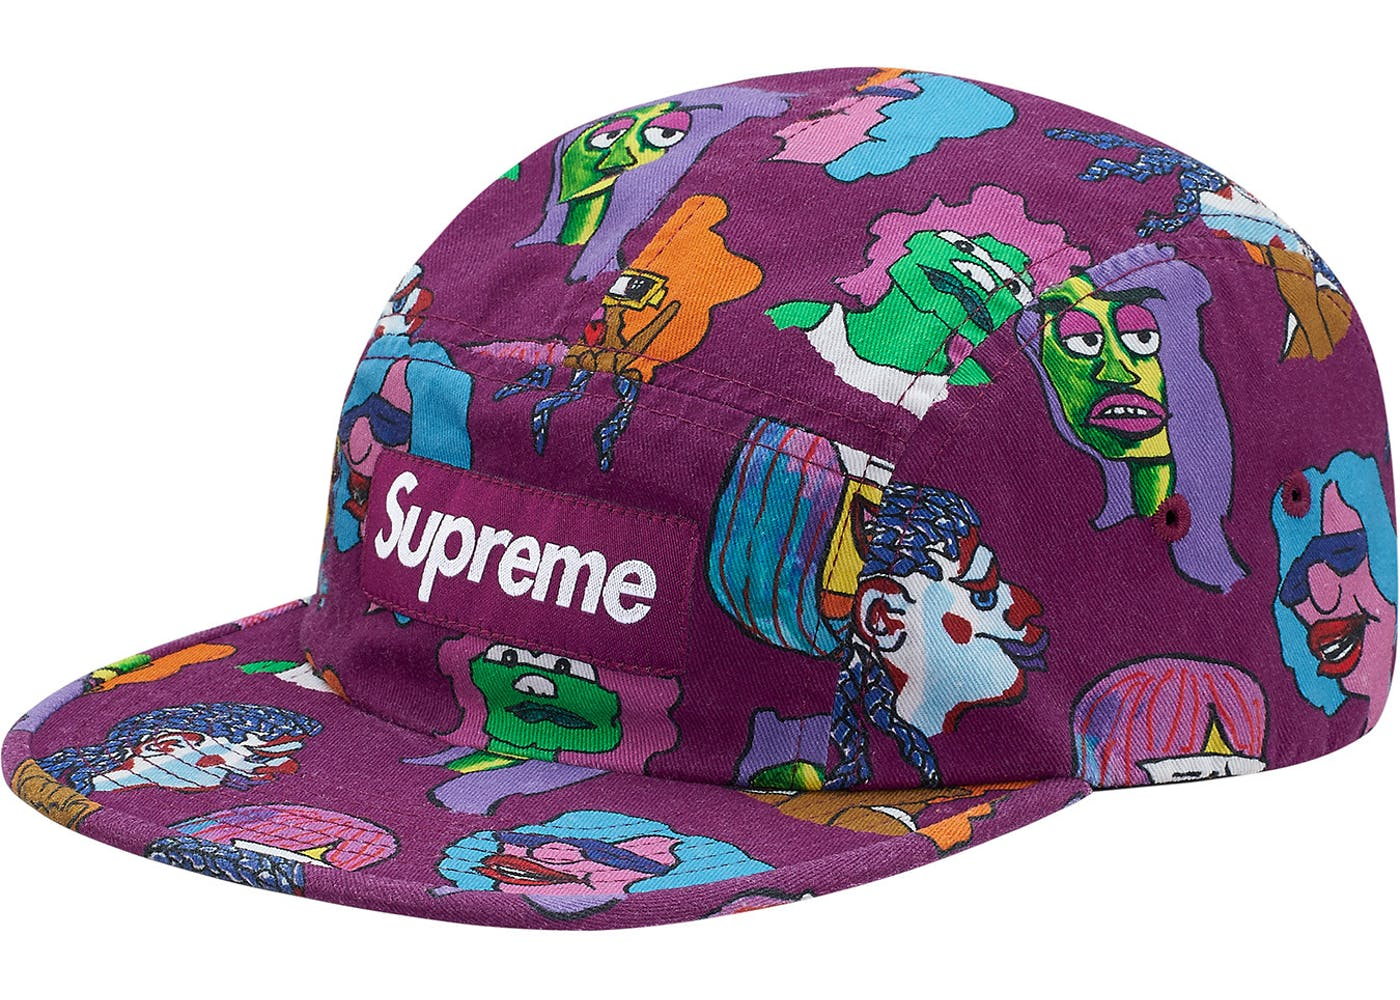 195c8688544 Supreme Gonz Heads Camp Cap Plum - StockX News